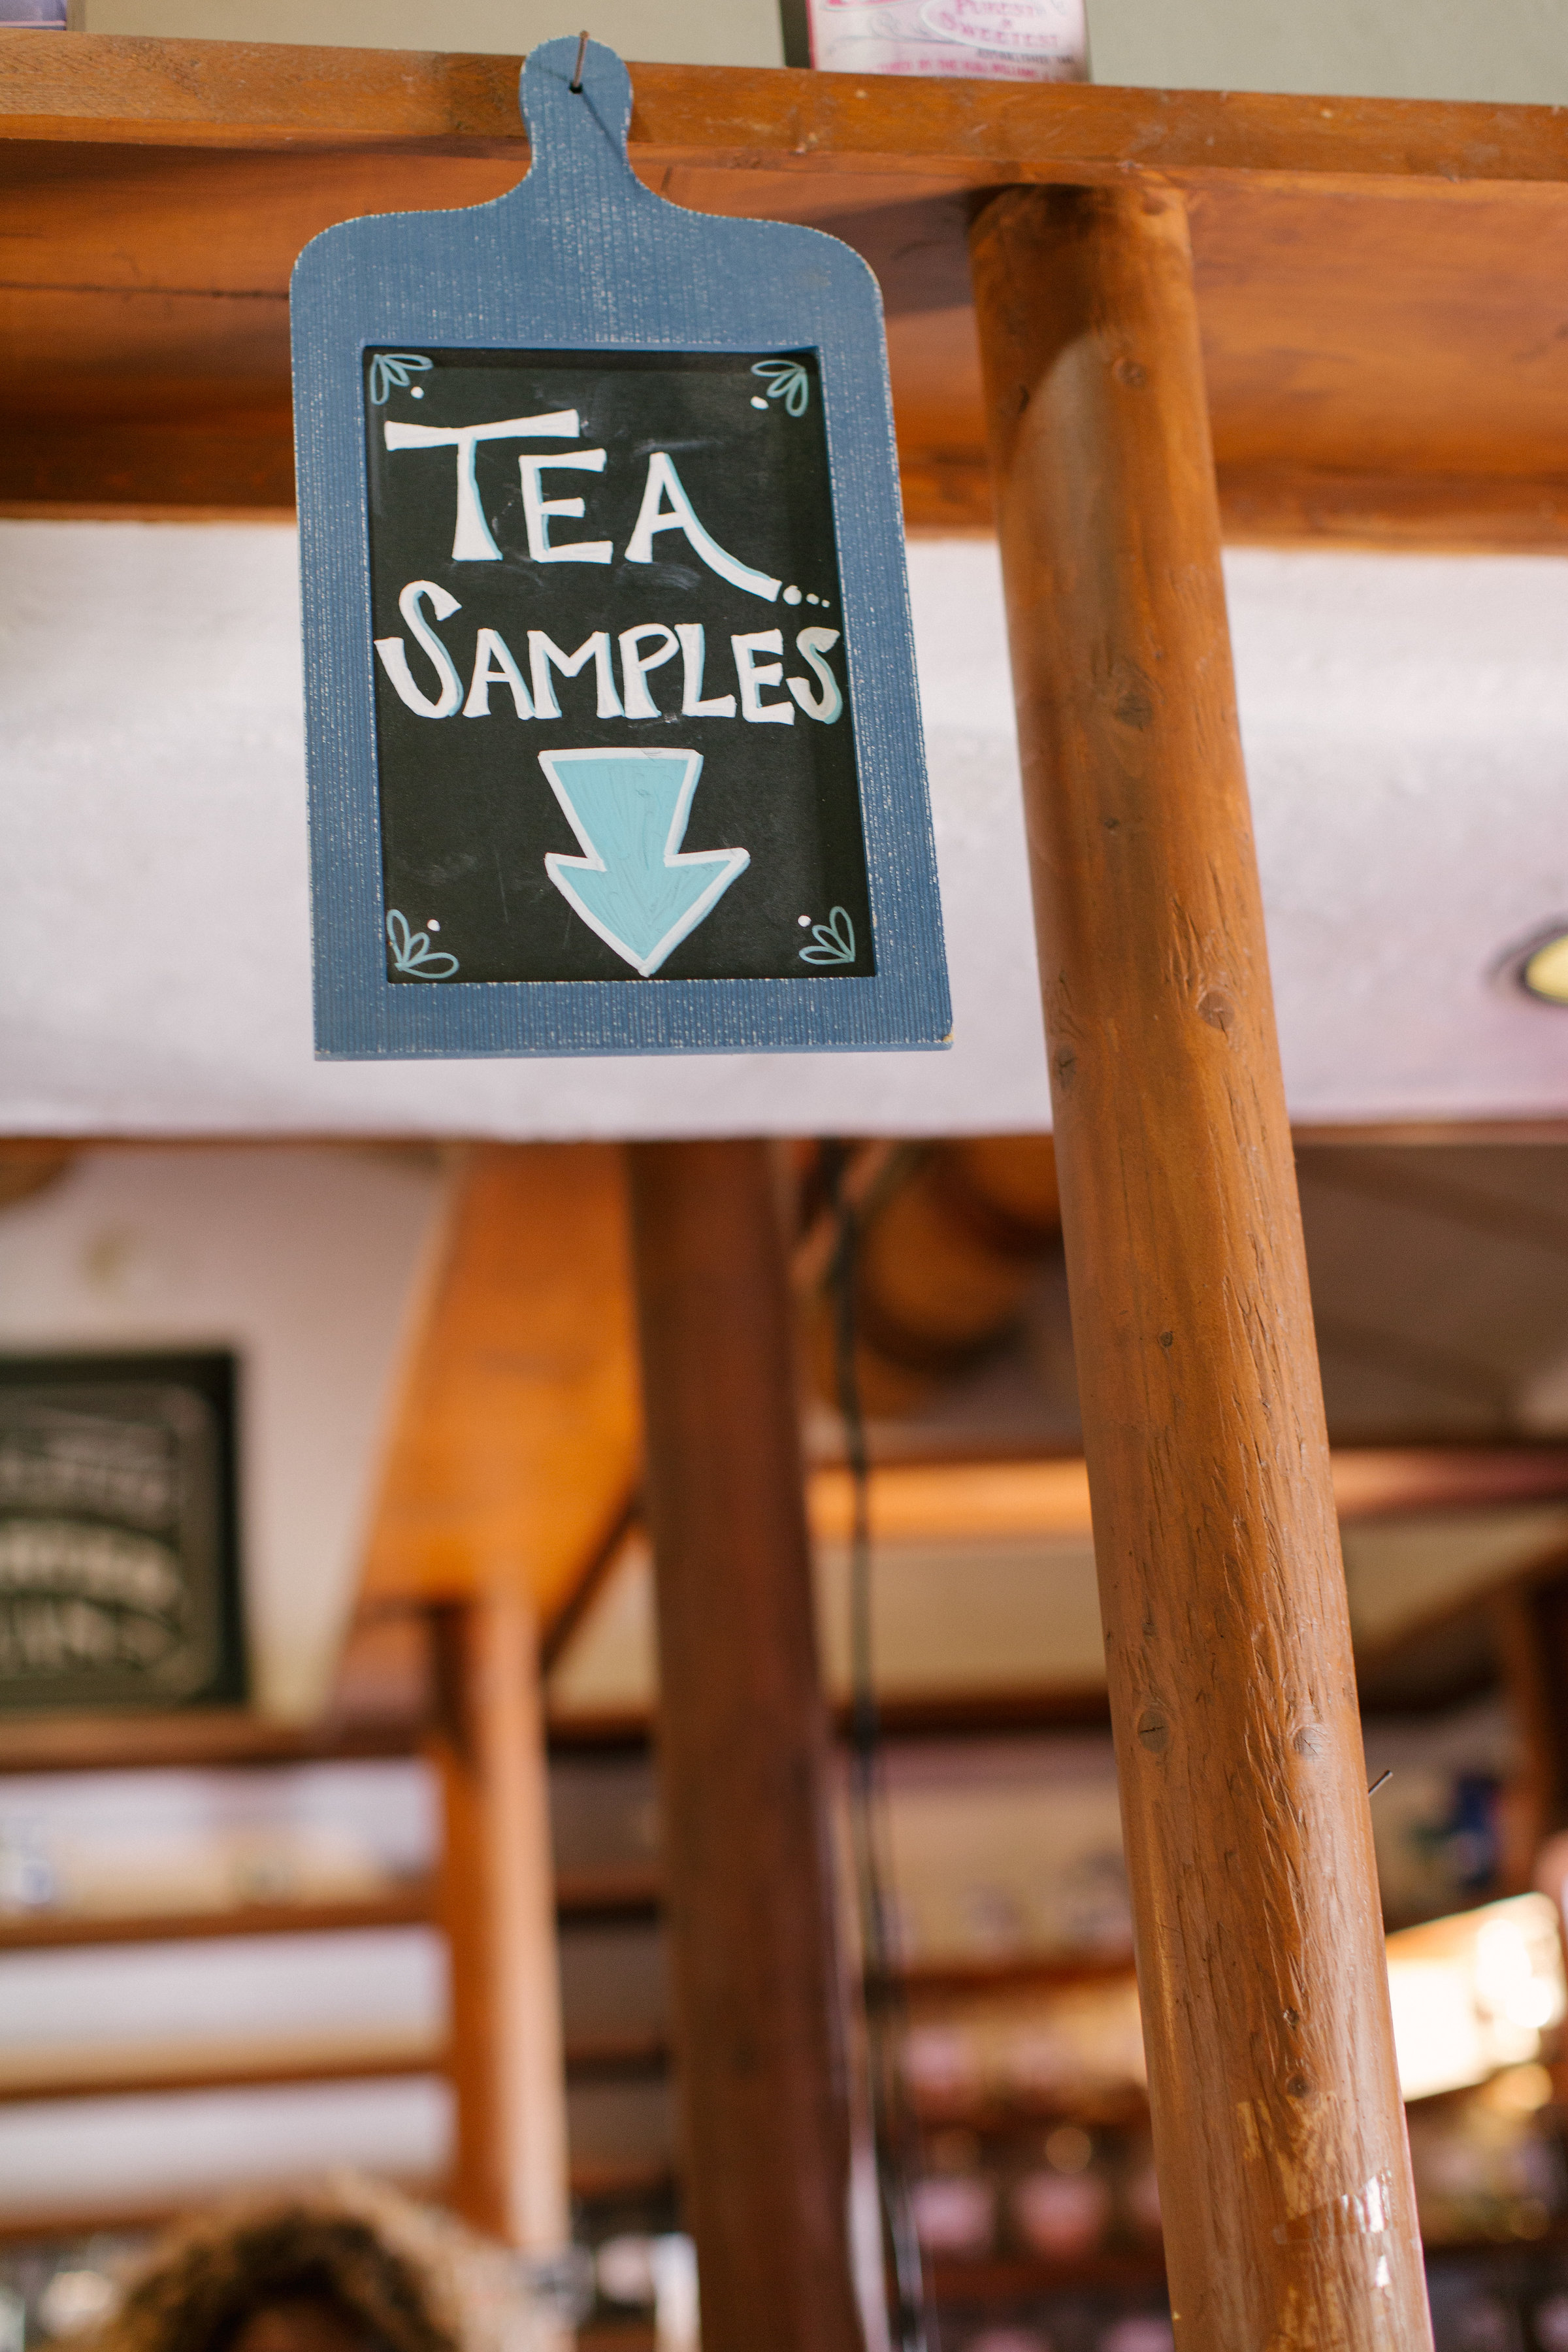 Old Town San Diego travel guide! Unique teas, coffee, and baked goods at The American House!